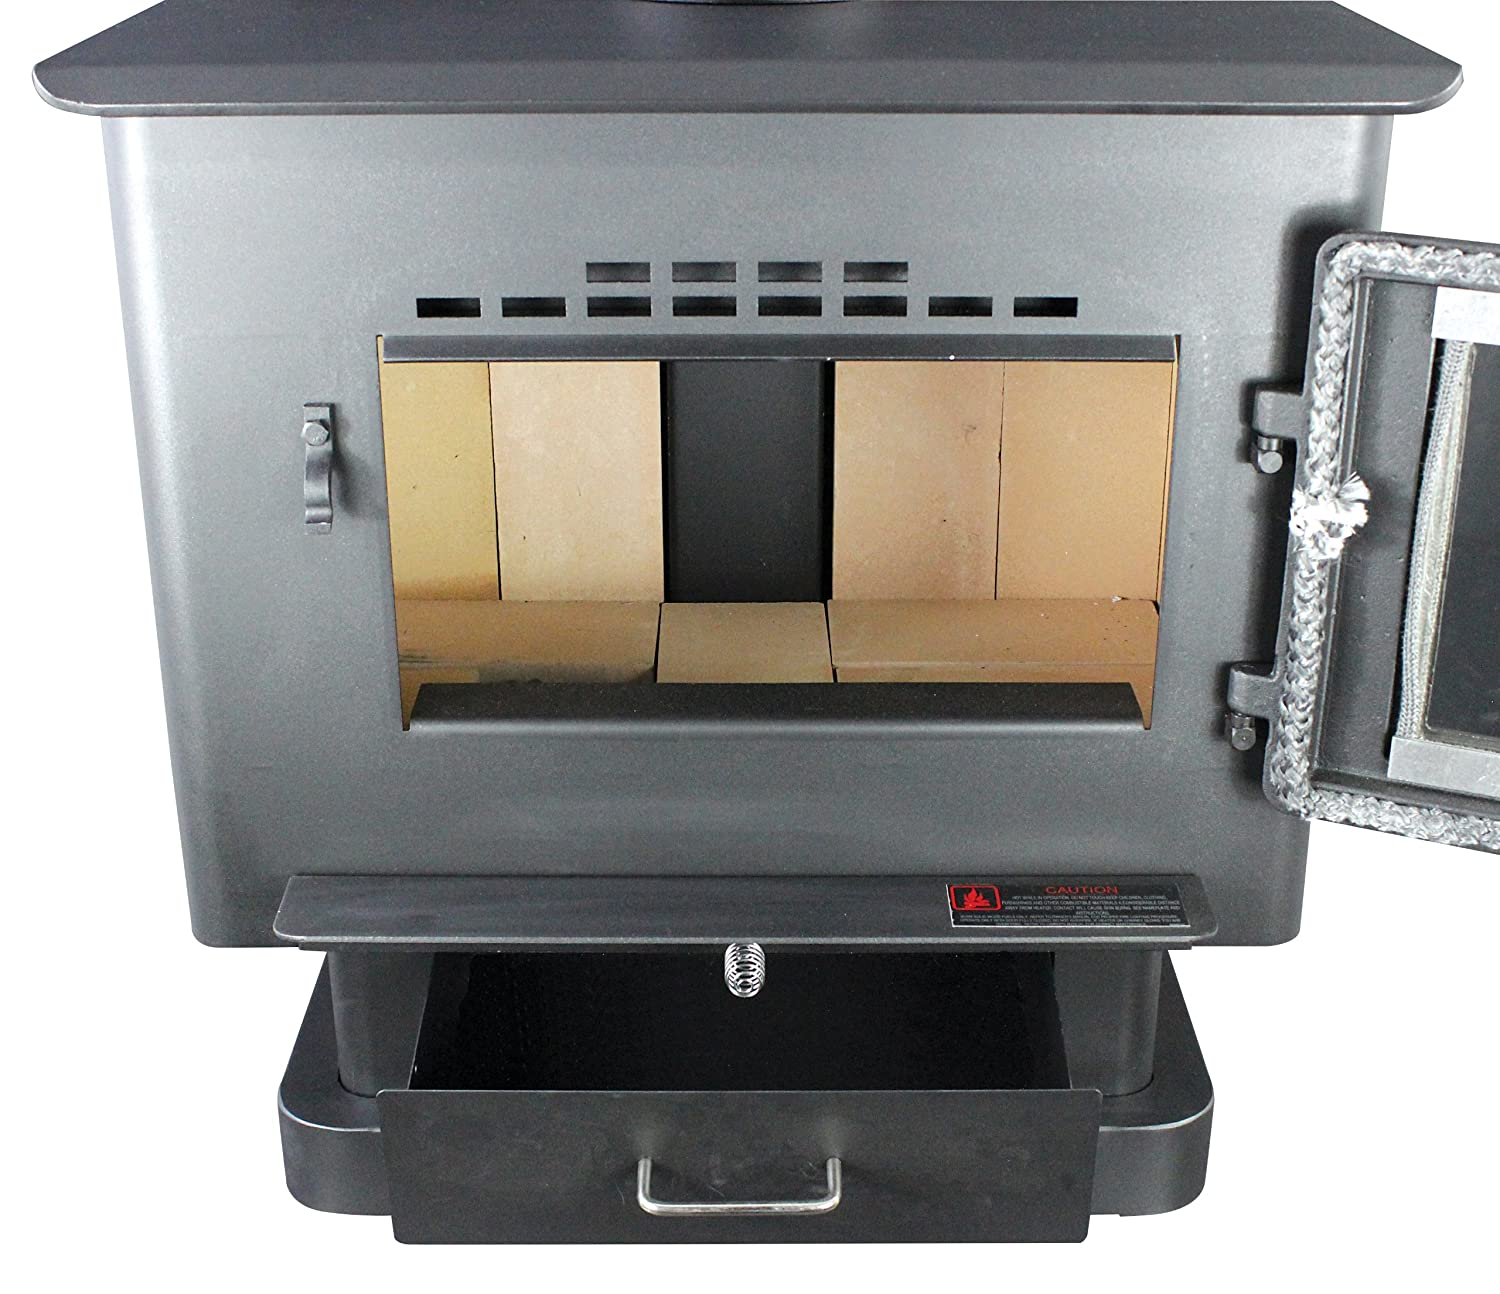 Epa Certified Wood Stove | WB Designs